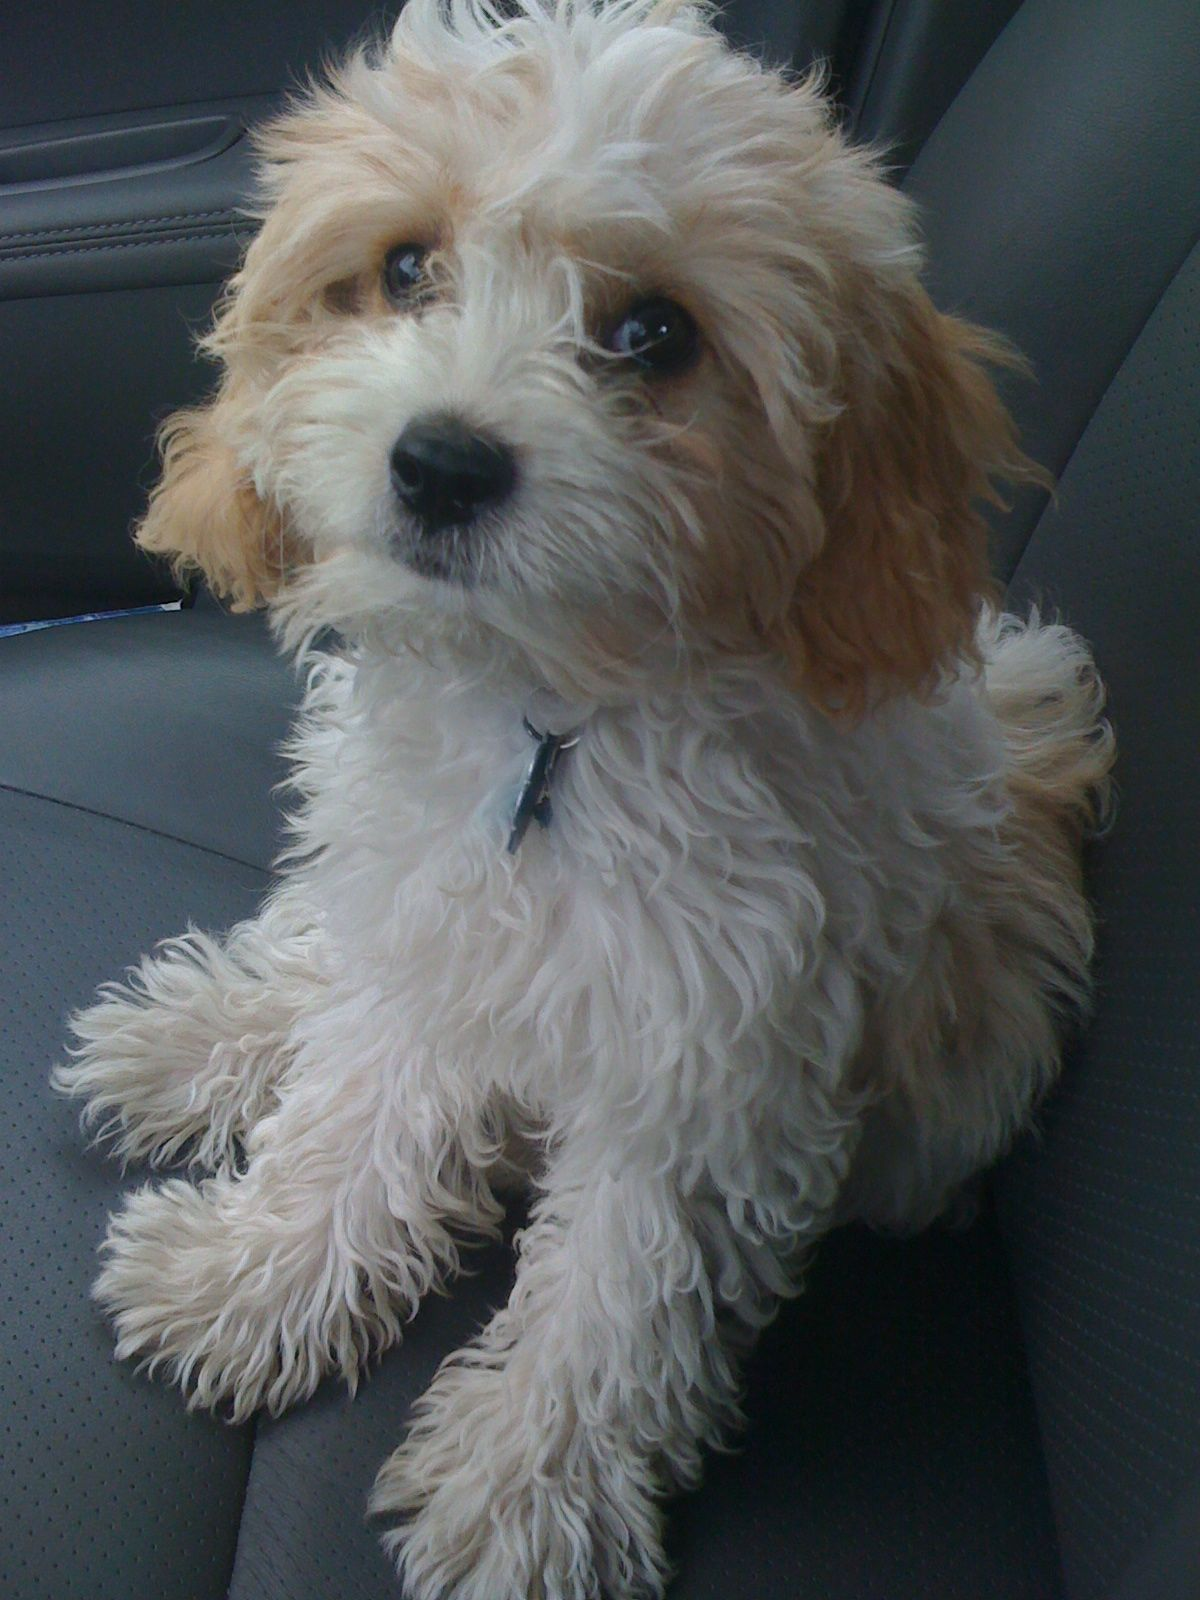 Where is the best place to buy a cavapoo puppy